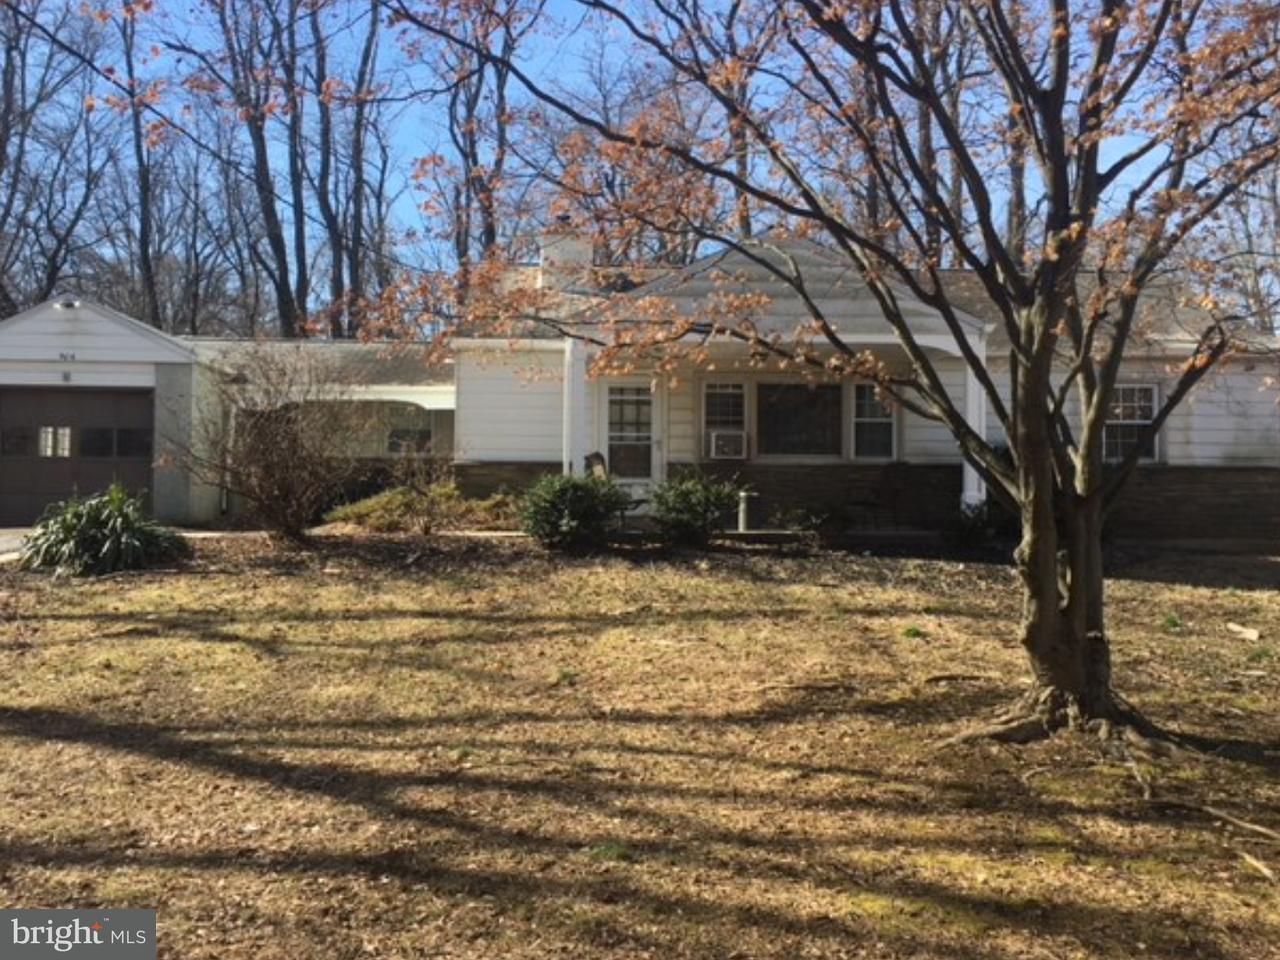 906 S Chester West Chester , PA 19382